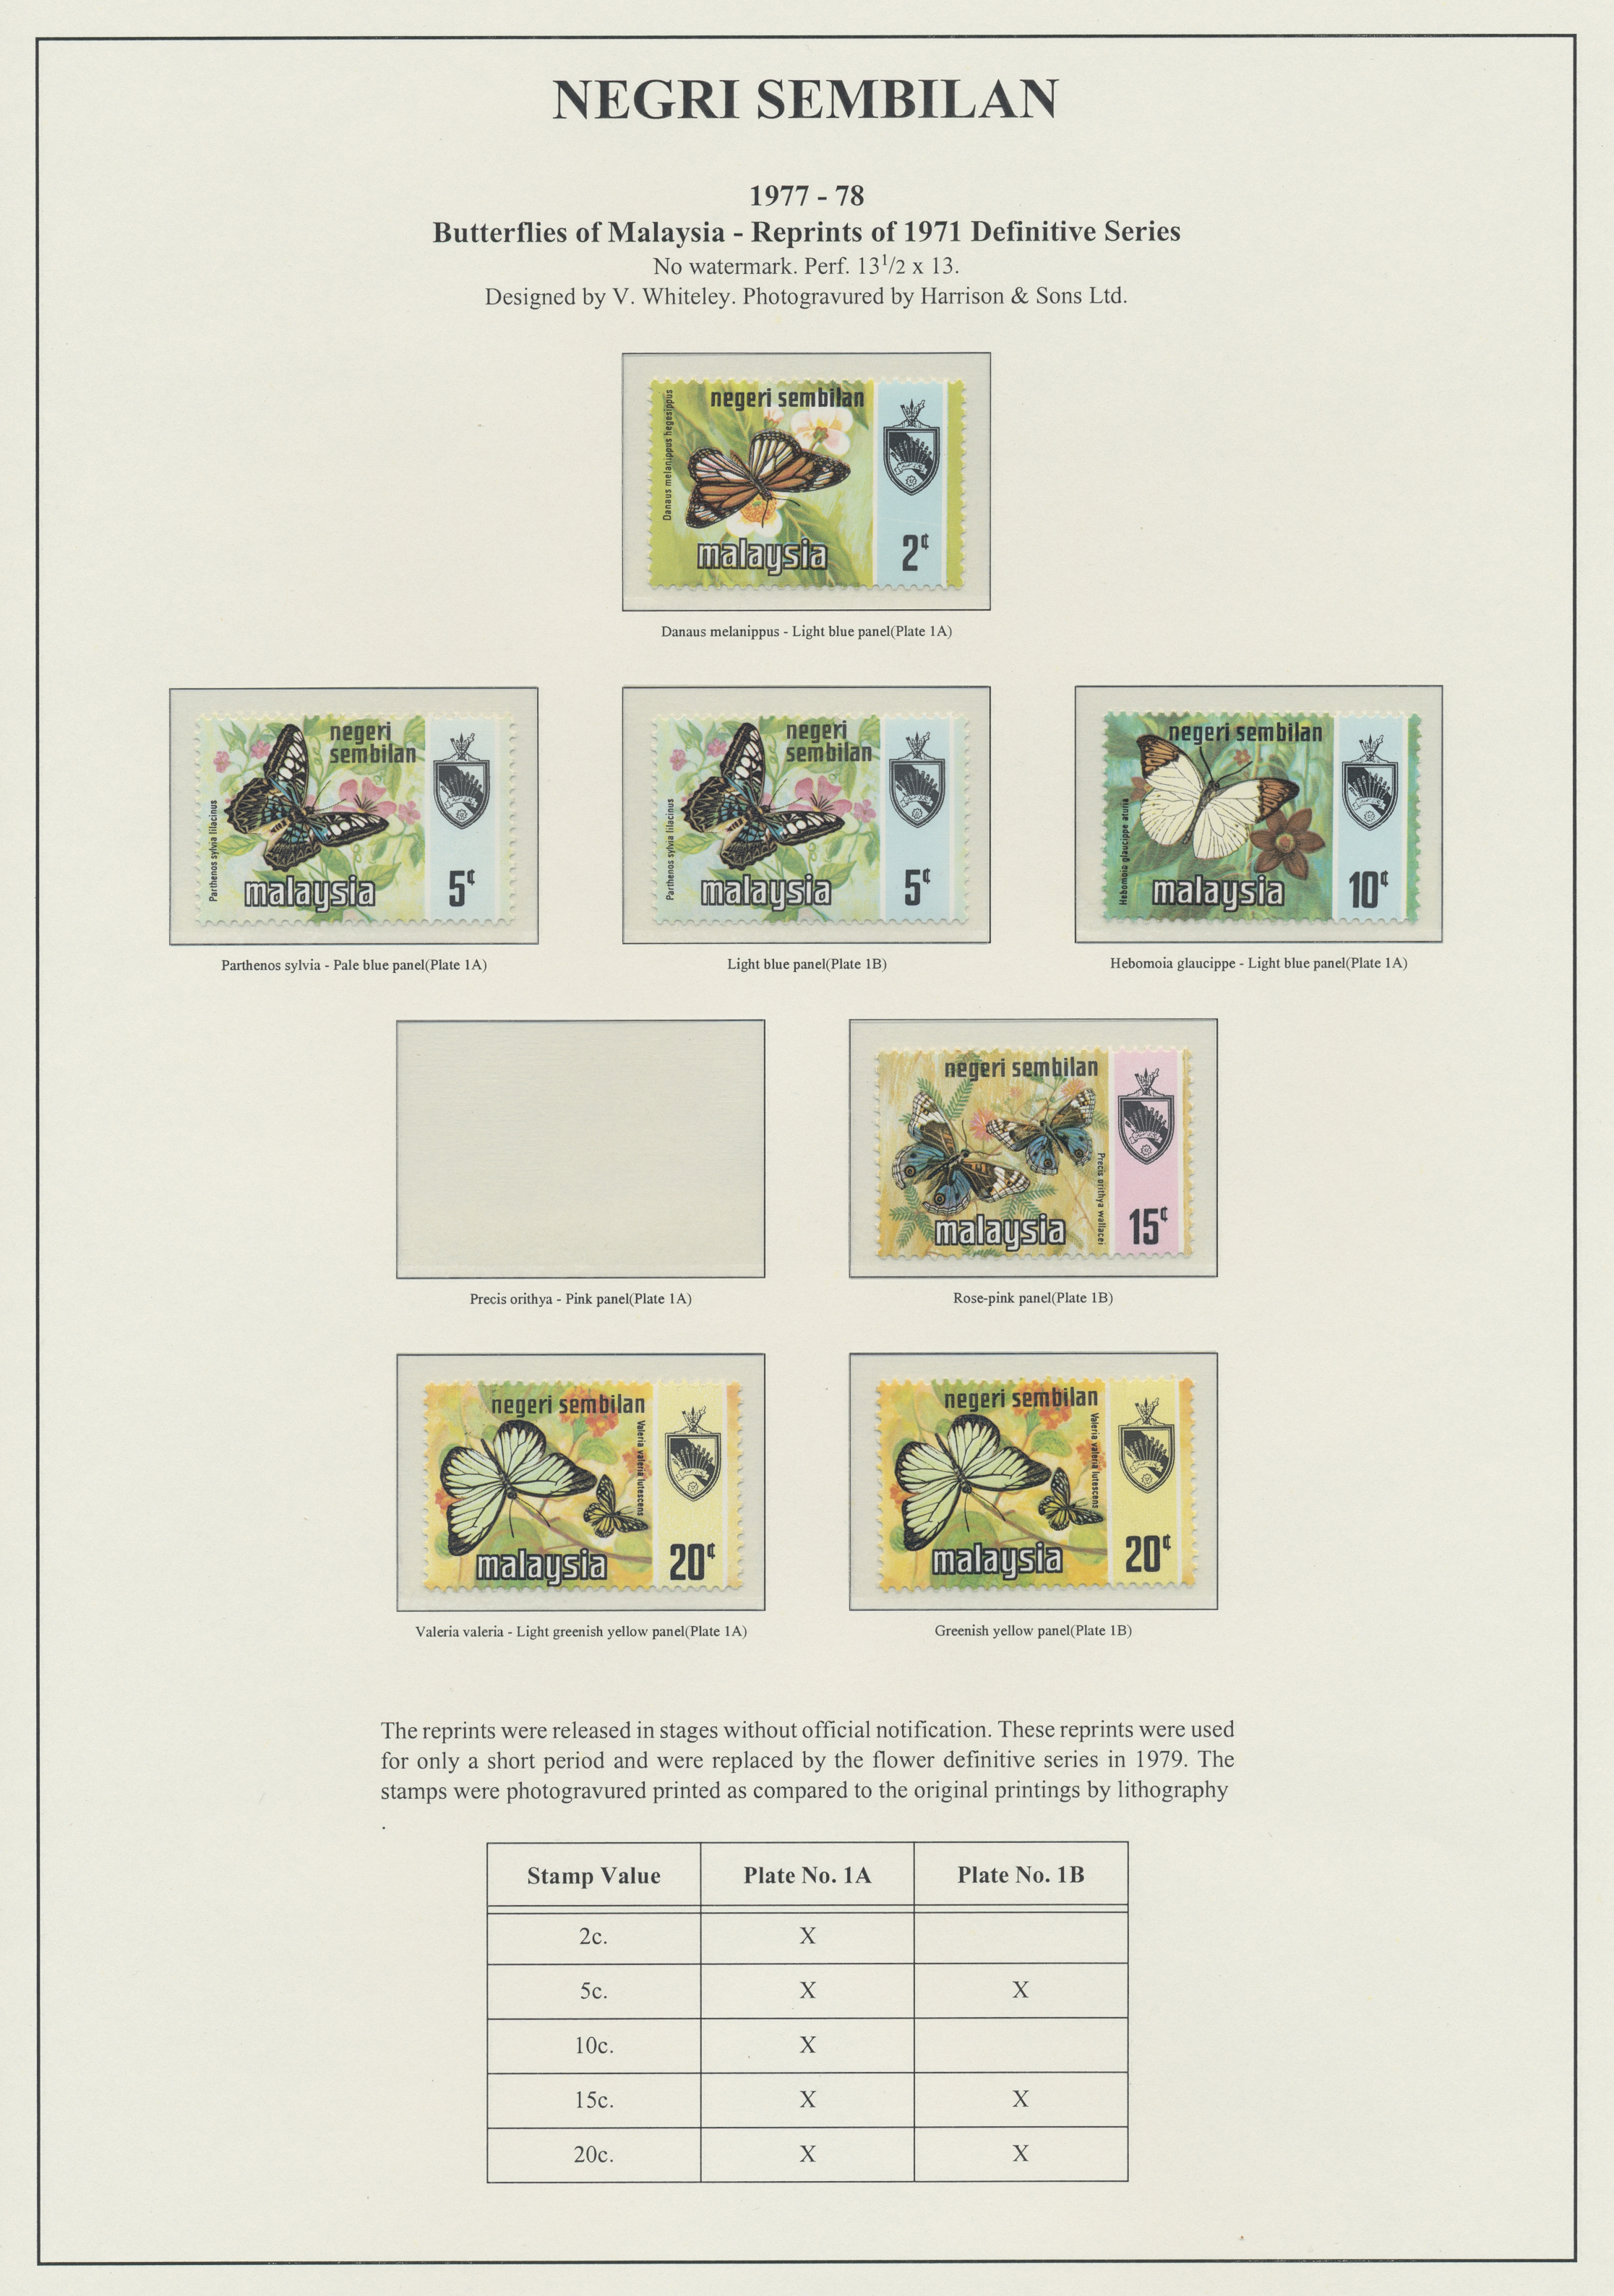 Lot 34572 - Malaiische Staaten - Negri Sembilan  -  Auktionshaus Christoph Gärtner GmbH & Co. KG Collections Germany,  Collections Supplement, Surprise boxes #39 Day 7